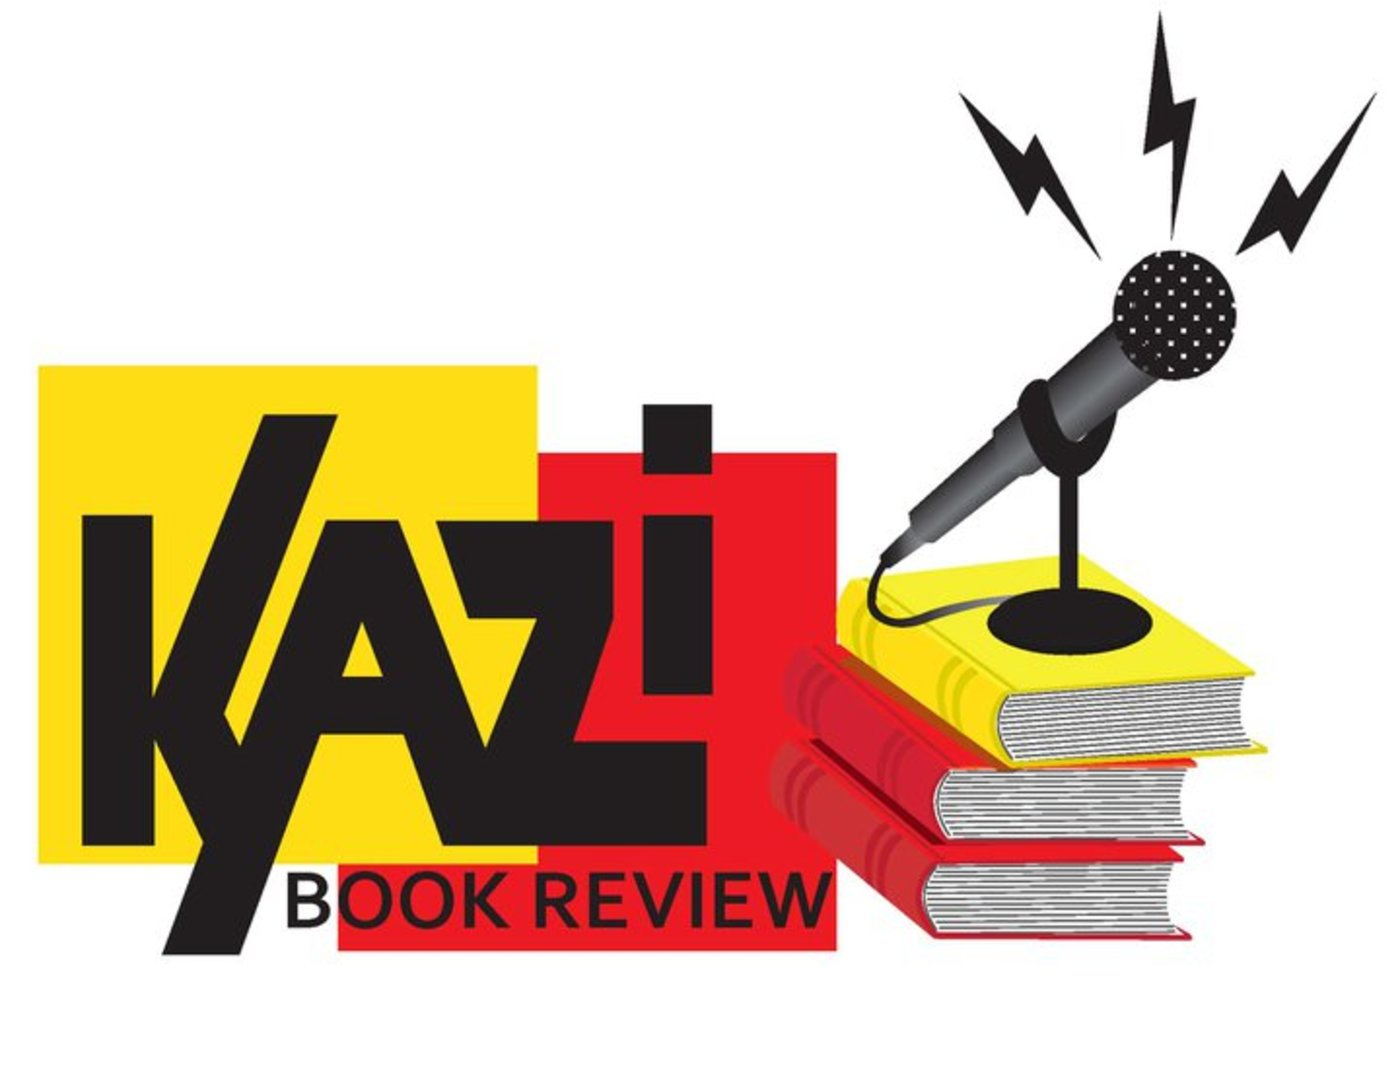 KAZI 88.7 FM Book Review